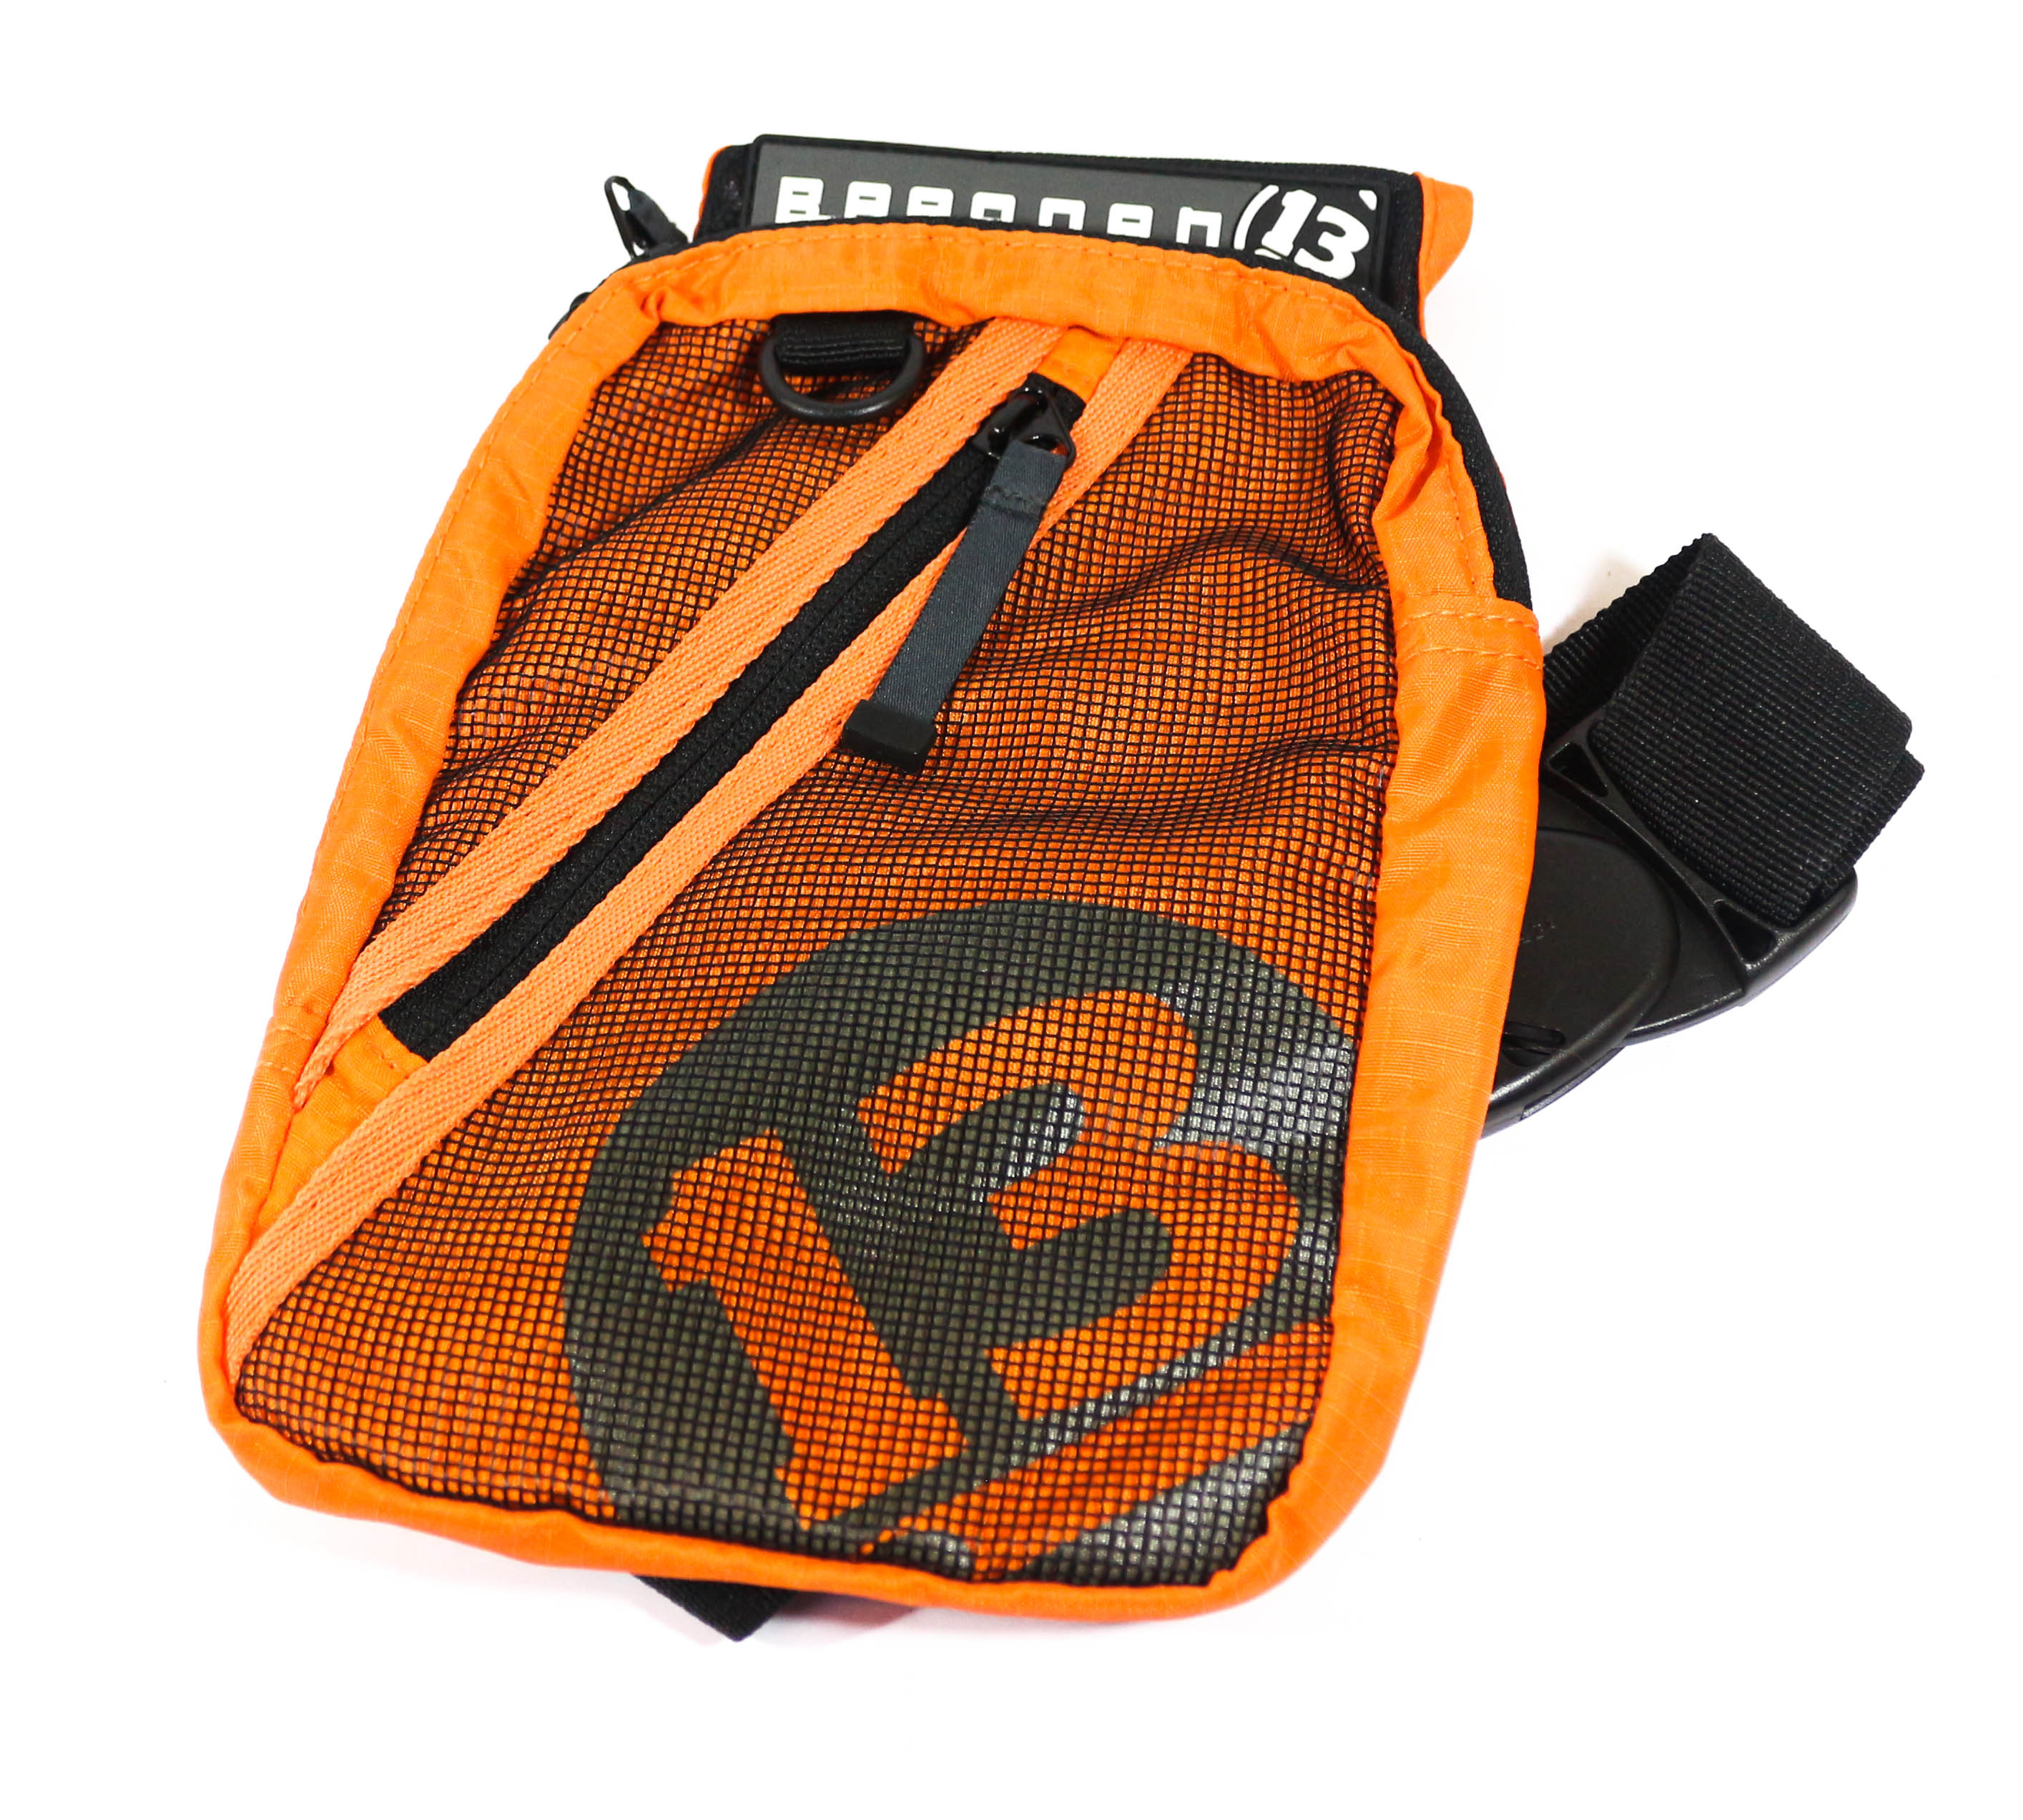 Breaden Momo Light Game Thigh Bag 300 x 300 x 50mm Orange (0011)